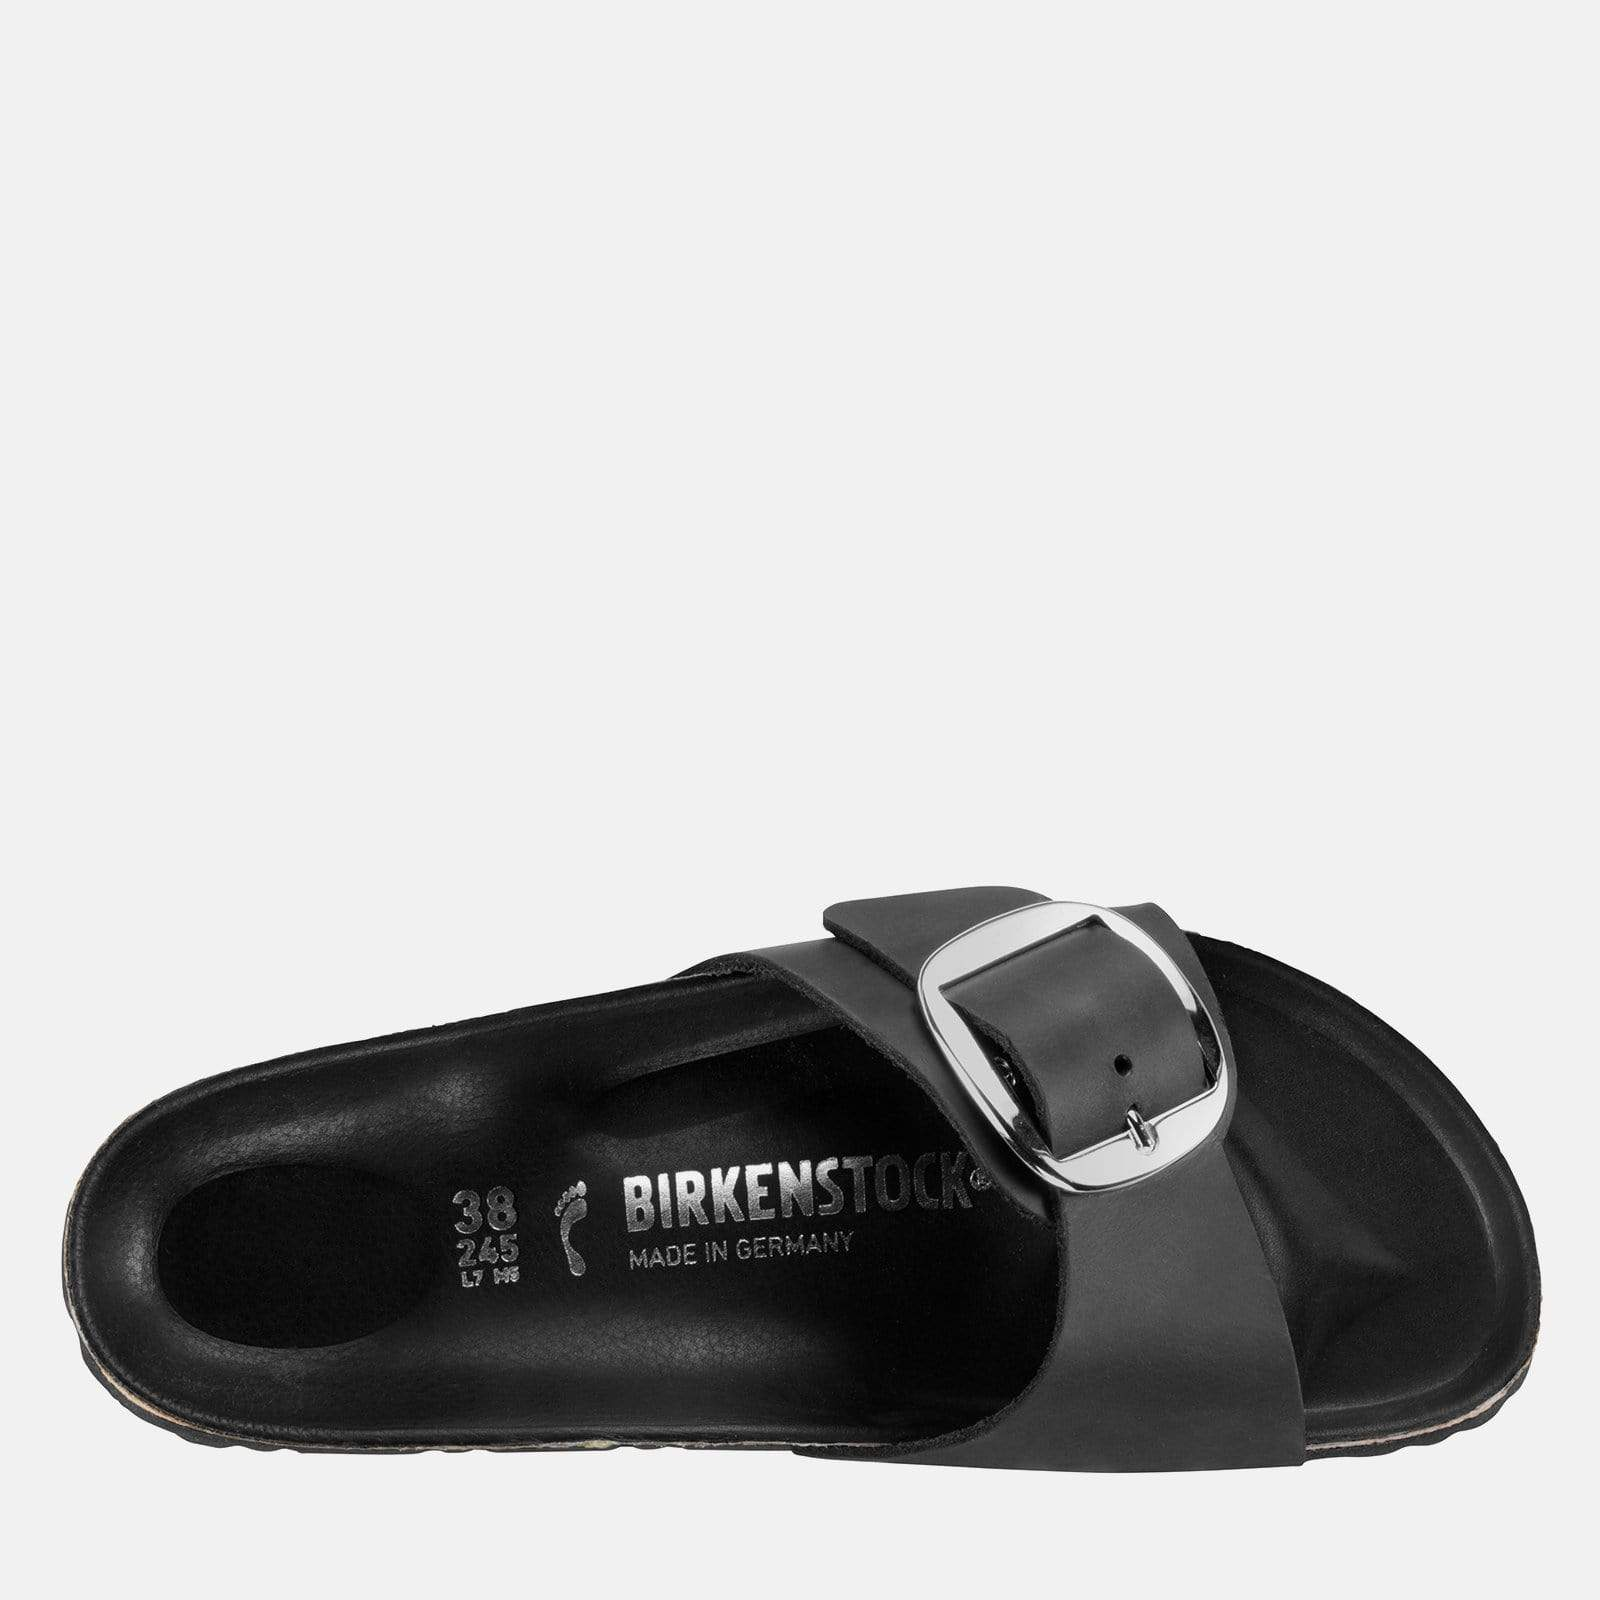 982fba5d834 Birkenstock Footwear Madrid Big Buckle Regular Fit Black 1006522.  Birkenstock Footwear Madrid Big Buckle Regular Fit Black 1006522